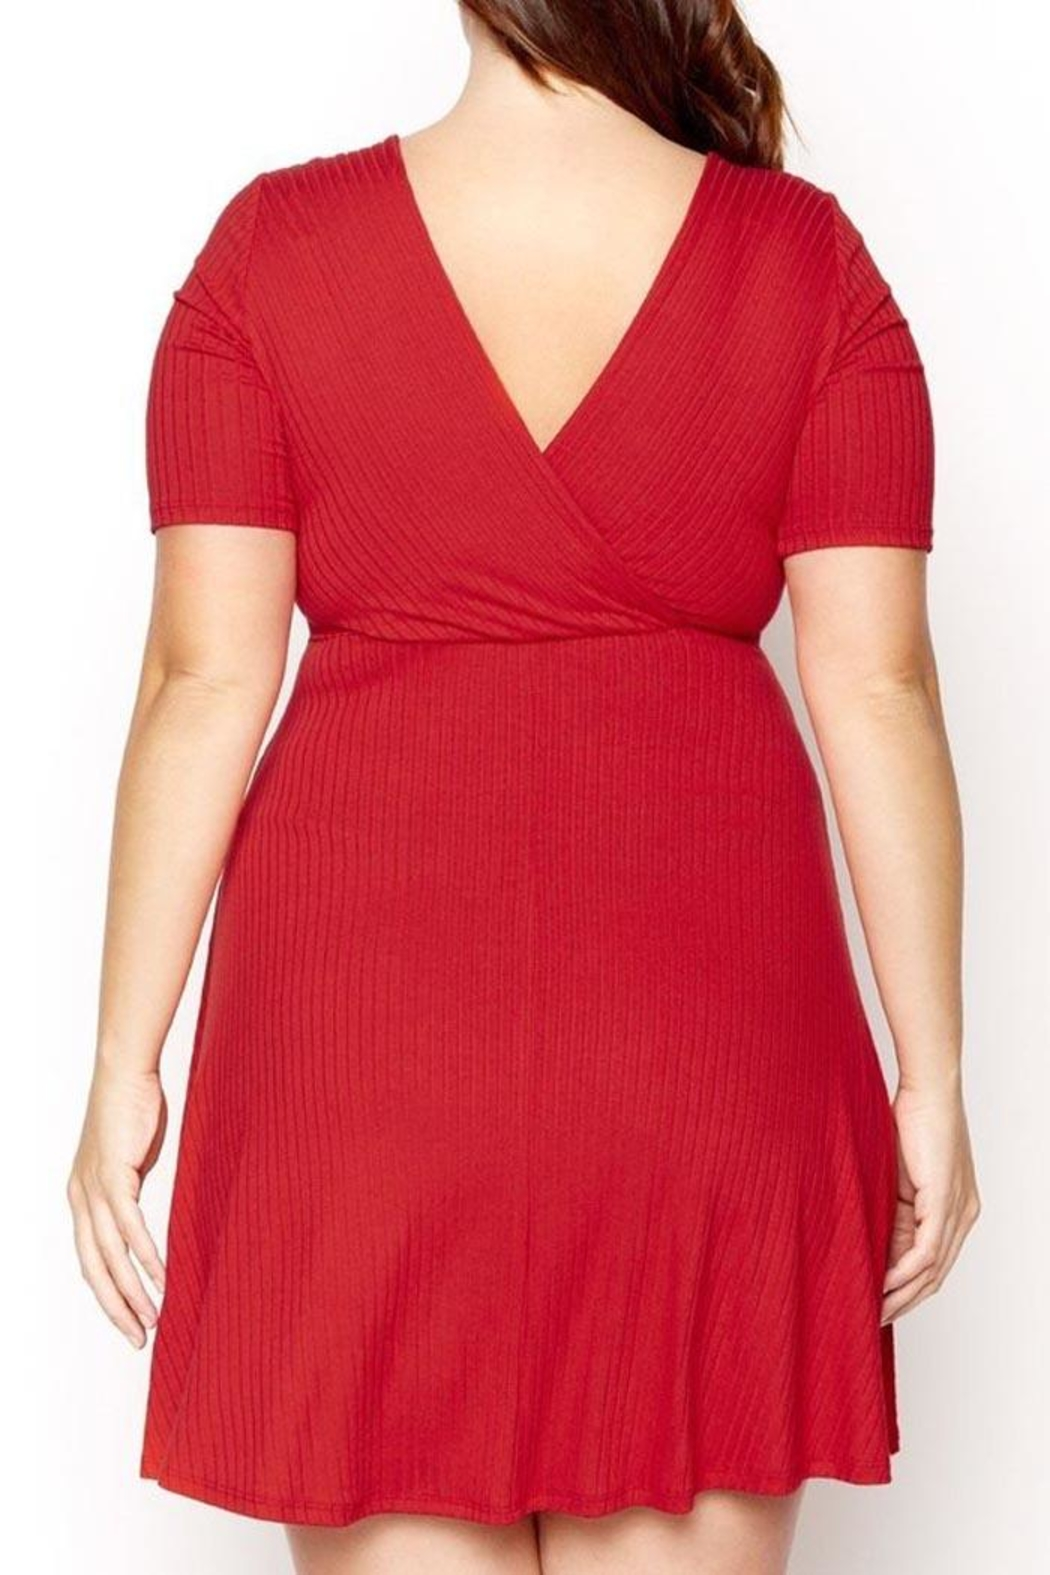 Mai Tai Red Wrap Dress - Side Cropped Image